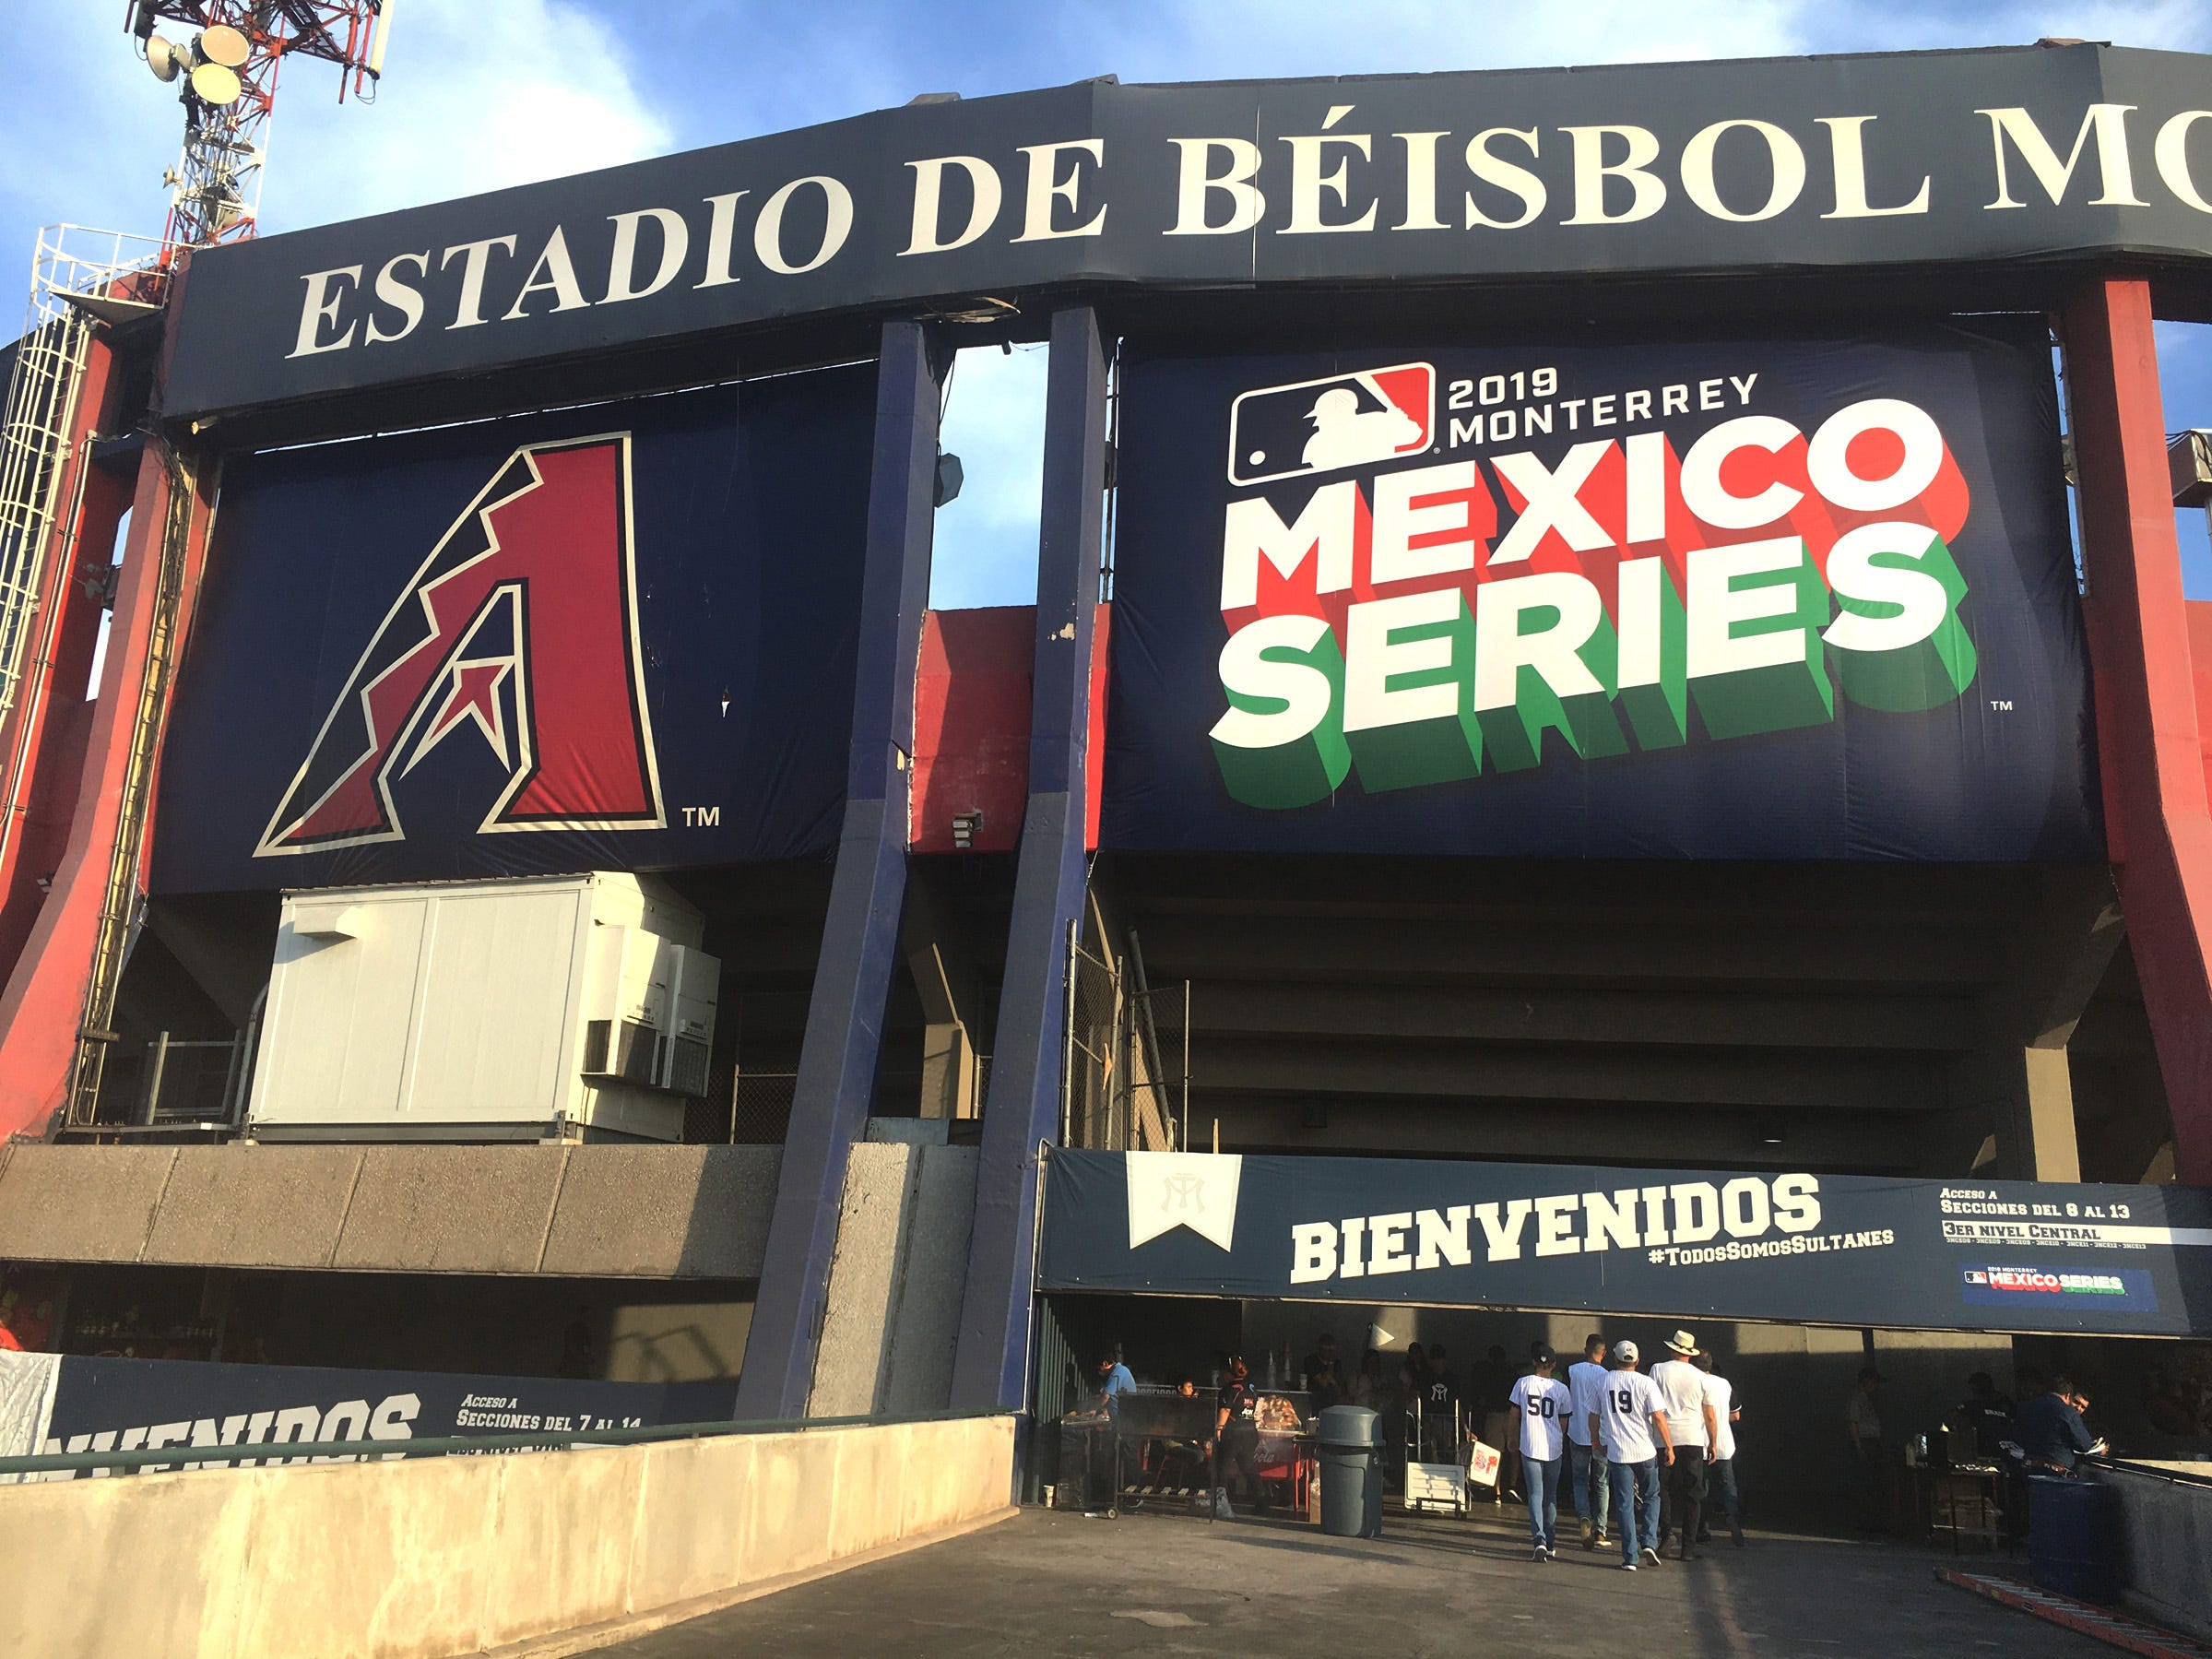 The Arizona Diamondbacks and the Colorado Rockies played two spring-training games in the Estadio de Beisbol in Monterrey, Mexico. The 21,000-seat stadium is home to the Sultanes de Monterrey and is the largest in Mexico. The Cincinnati Reds and the St. Louis Cardinals will play two regular-season games in Monterrey in April, and the Los Angeles Angles and the Houston Astros will play two regular-season games there in May.